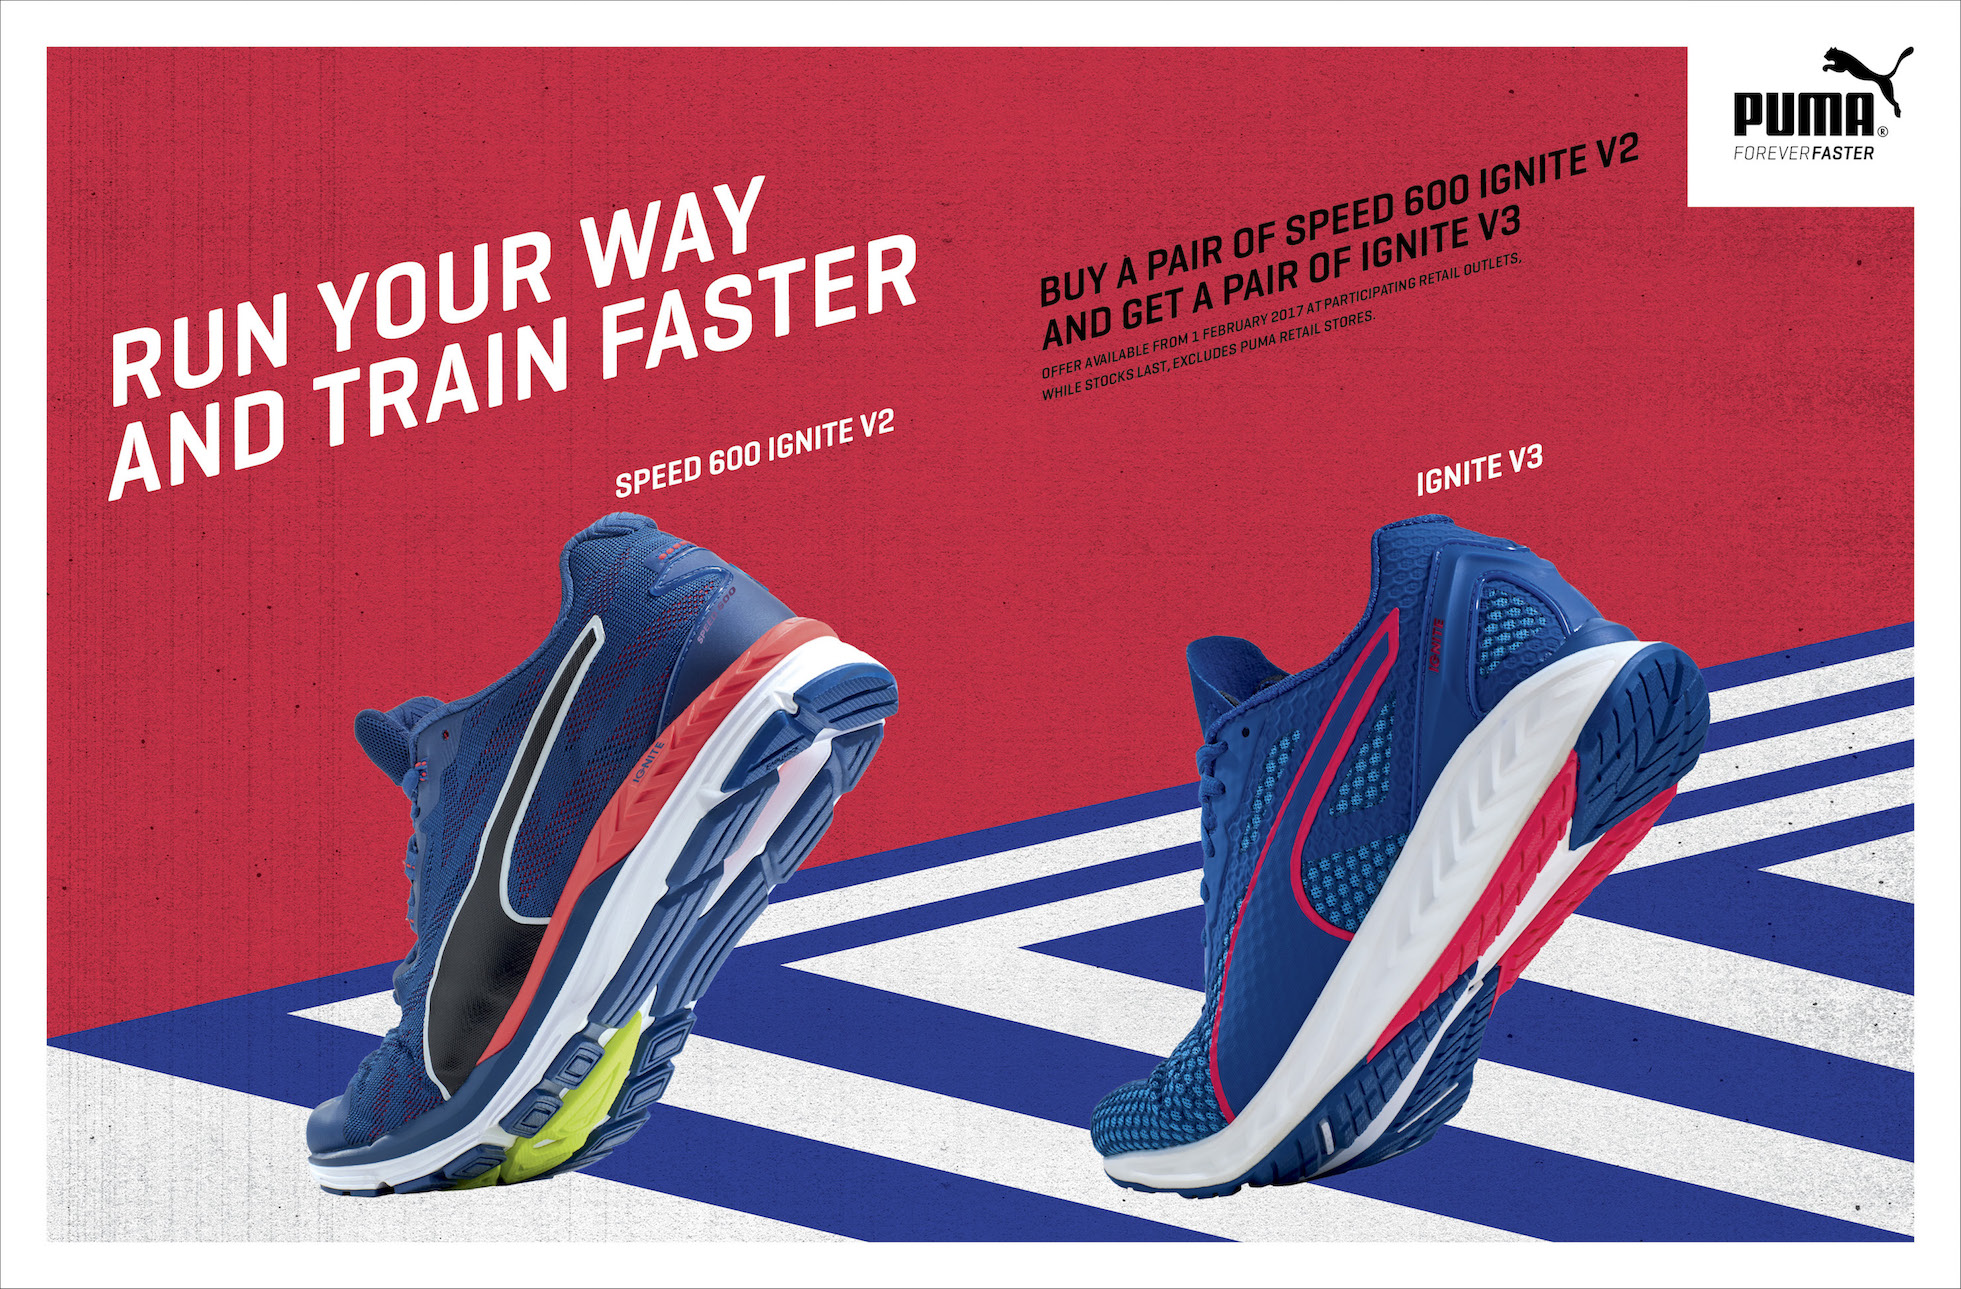 8b2fdddcdb1639 PUMA unveils the Speed 600 IGNITE v2 - Muscle and Fitness Hers